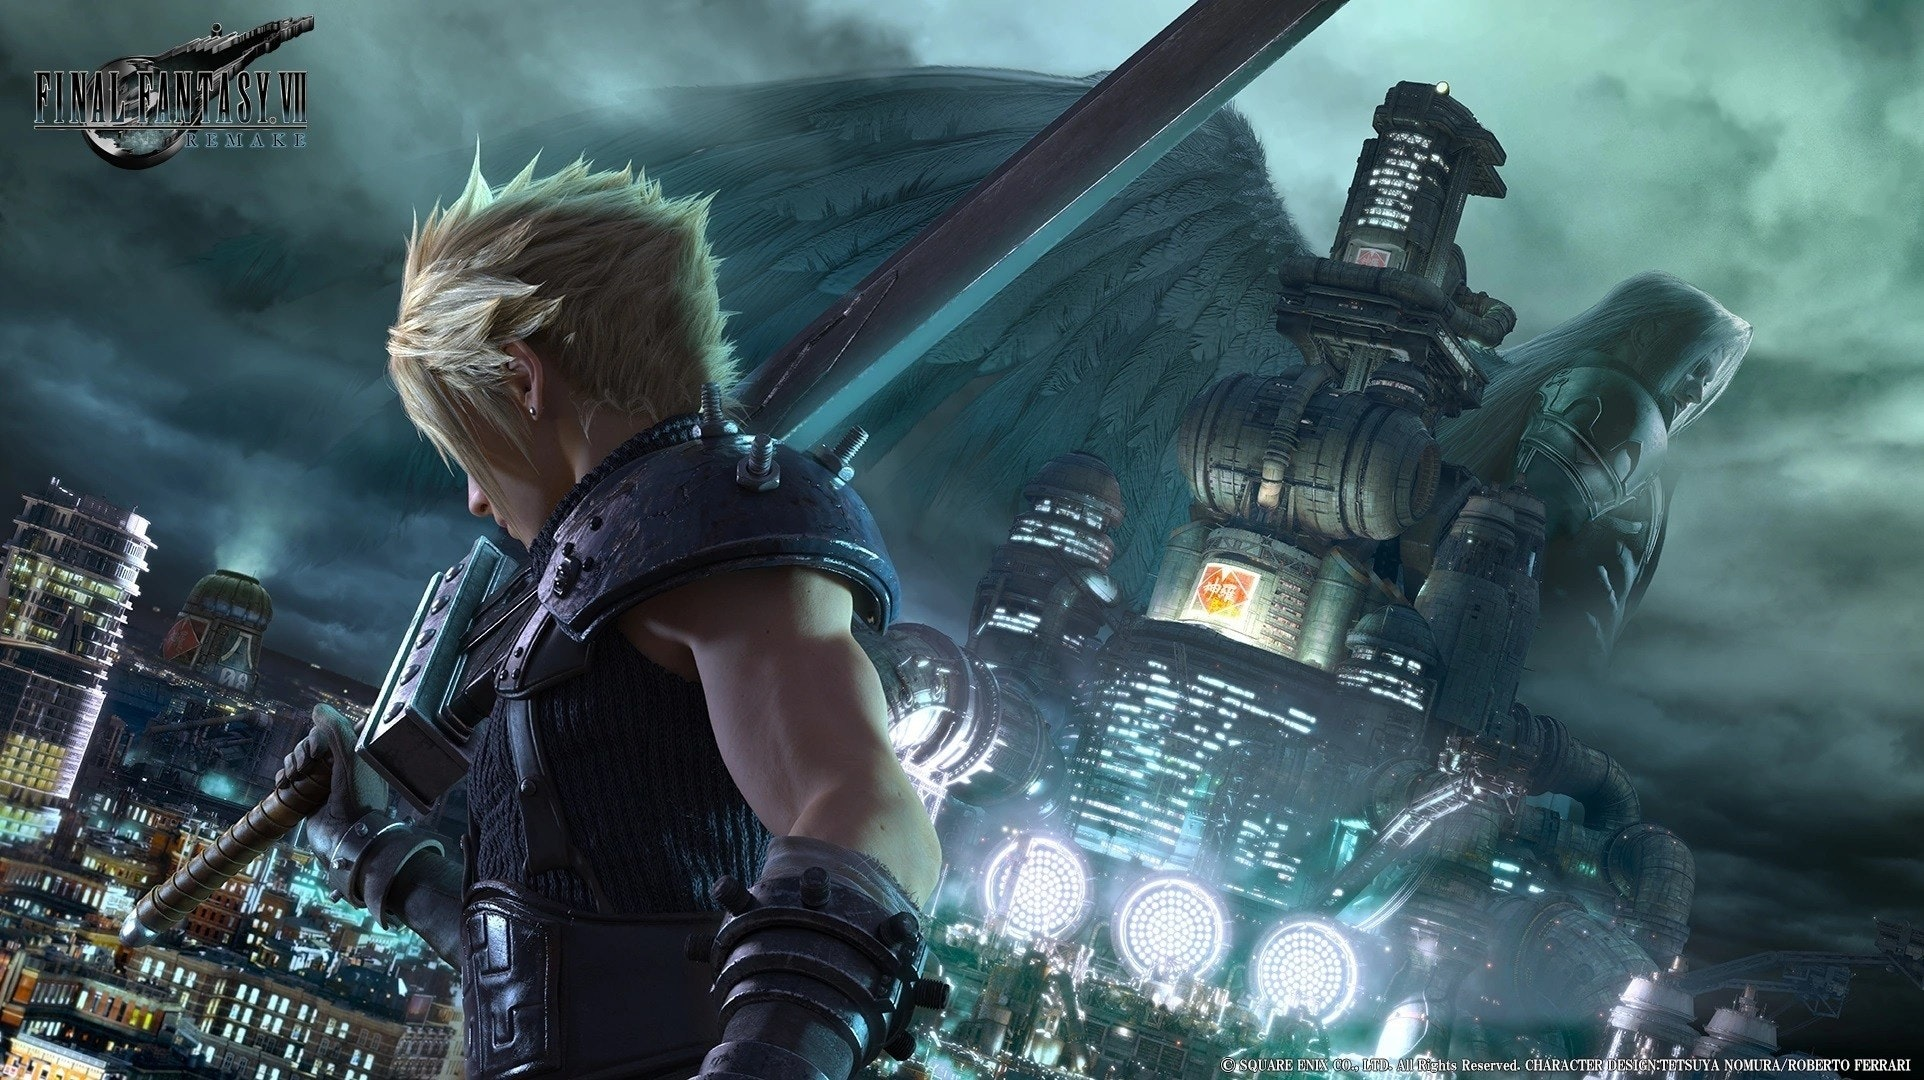 Final Fantasy VII Remake, Final Fantasy VII, 2019 Electronic Entertainment Expo, Video Games, , Square Enix Co., Ltd., Sephiroth, Electronic Entertainment Expo 2018, Tifa Lockhart, Video game remake, final fantasy 7 remake, Action-adventure game, Pc game, Cg artwork, Games, Adventure game, Strategy video game, Digital compositing, Screenshot, Movie, Fictional character